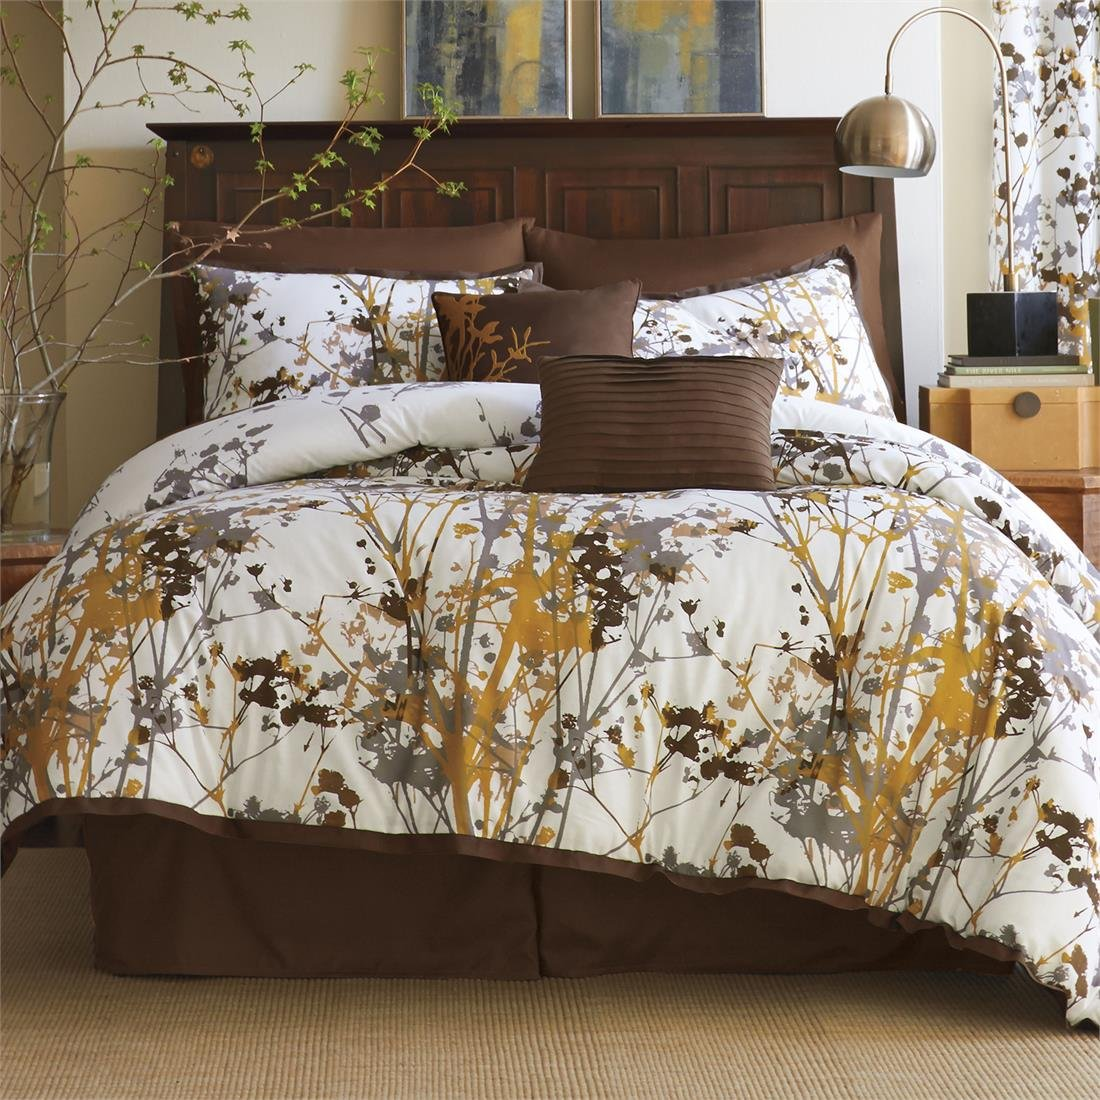 Brylanehome Funky Floral Oversized Multi-Pc. Comforter Set (Chocolate Latte,Full